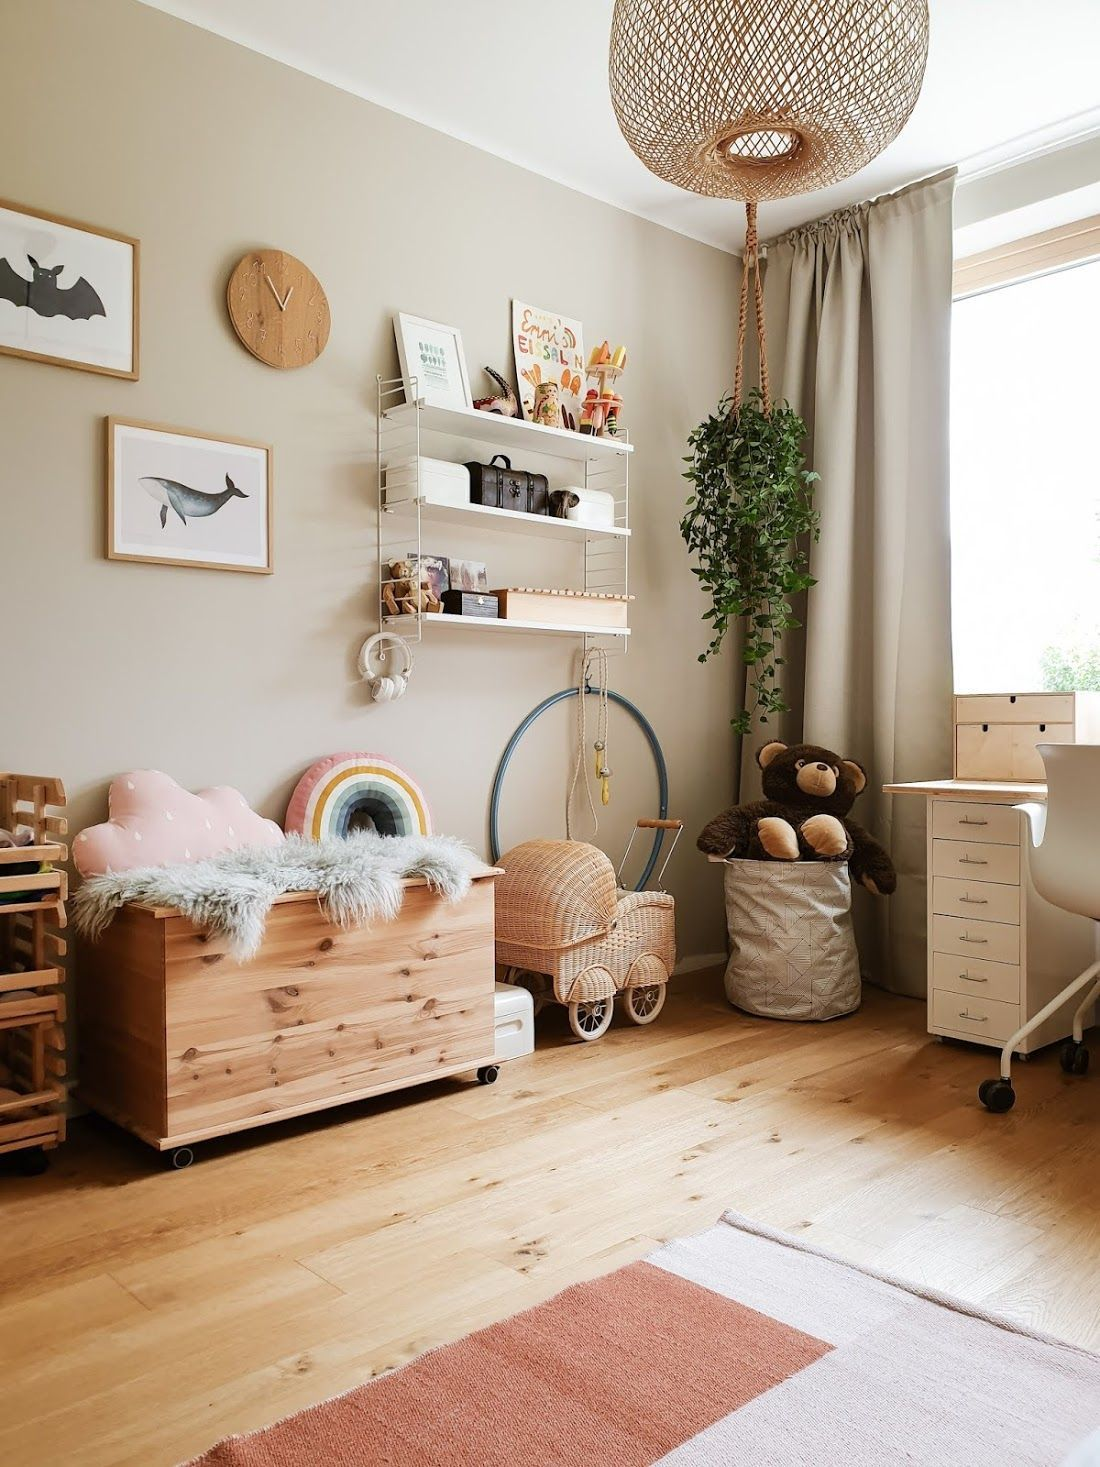 Photo of Ikea Children's Room | Kid's room with beige wall | Blog housing project | string she … – My Blog